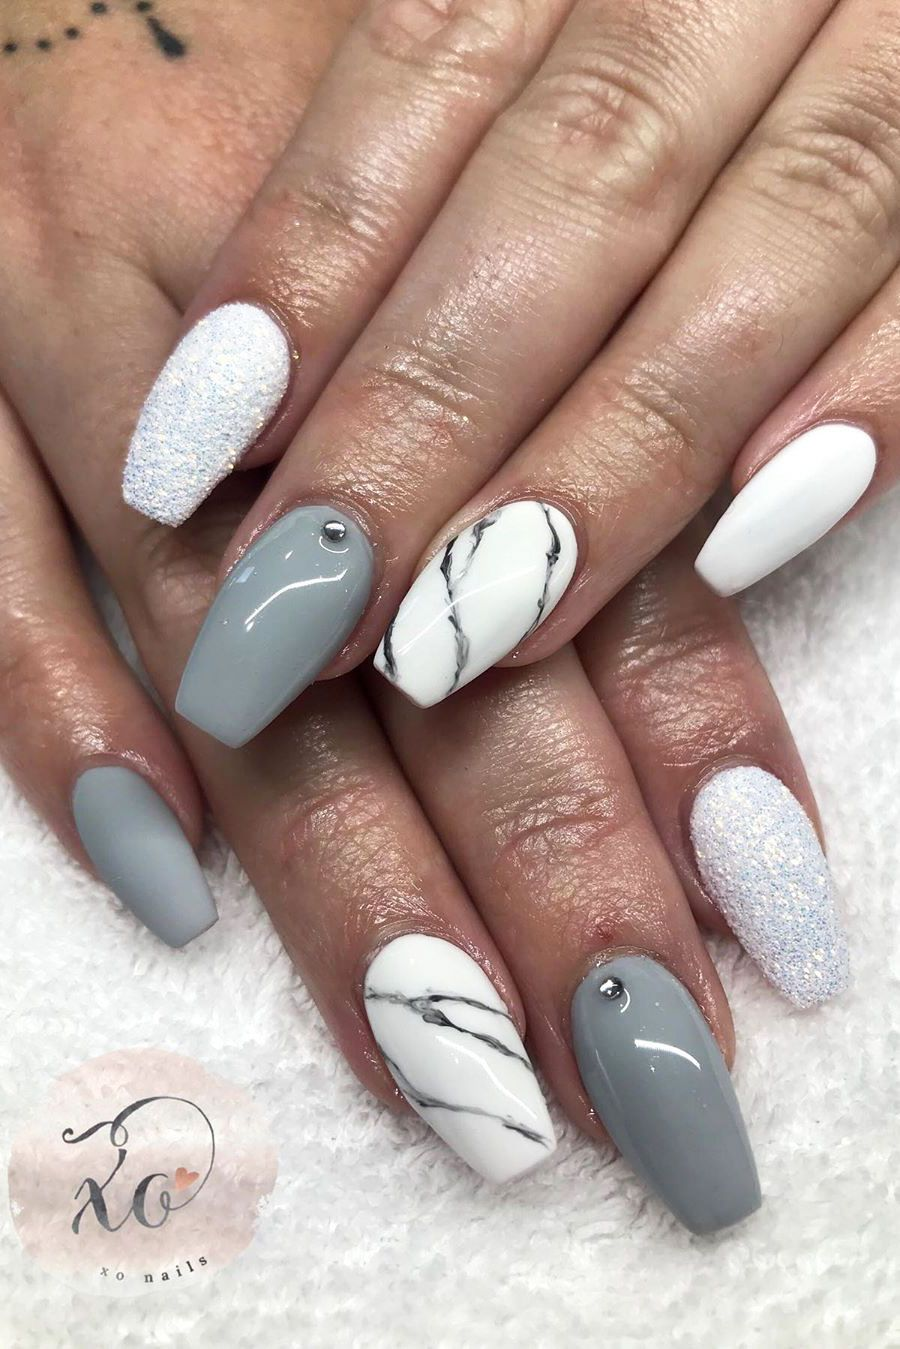 Cute Gray Nails With Glitter Coffin Shaped Design Lipstick Nails Nail Art Designs Grey Nail Designs